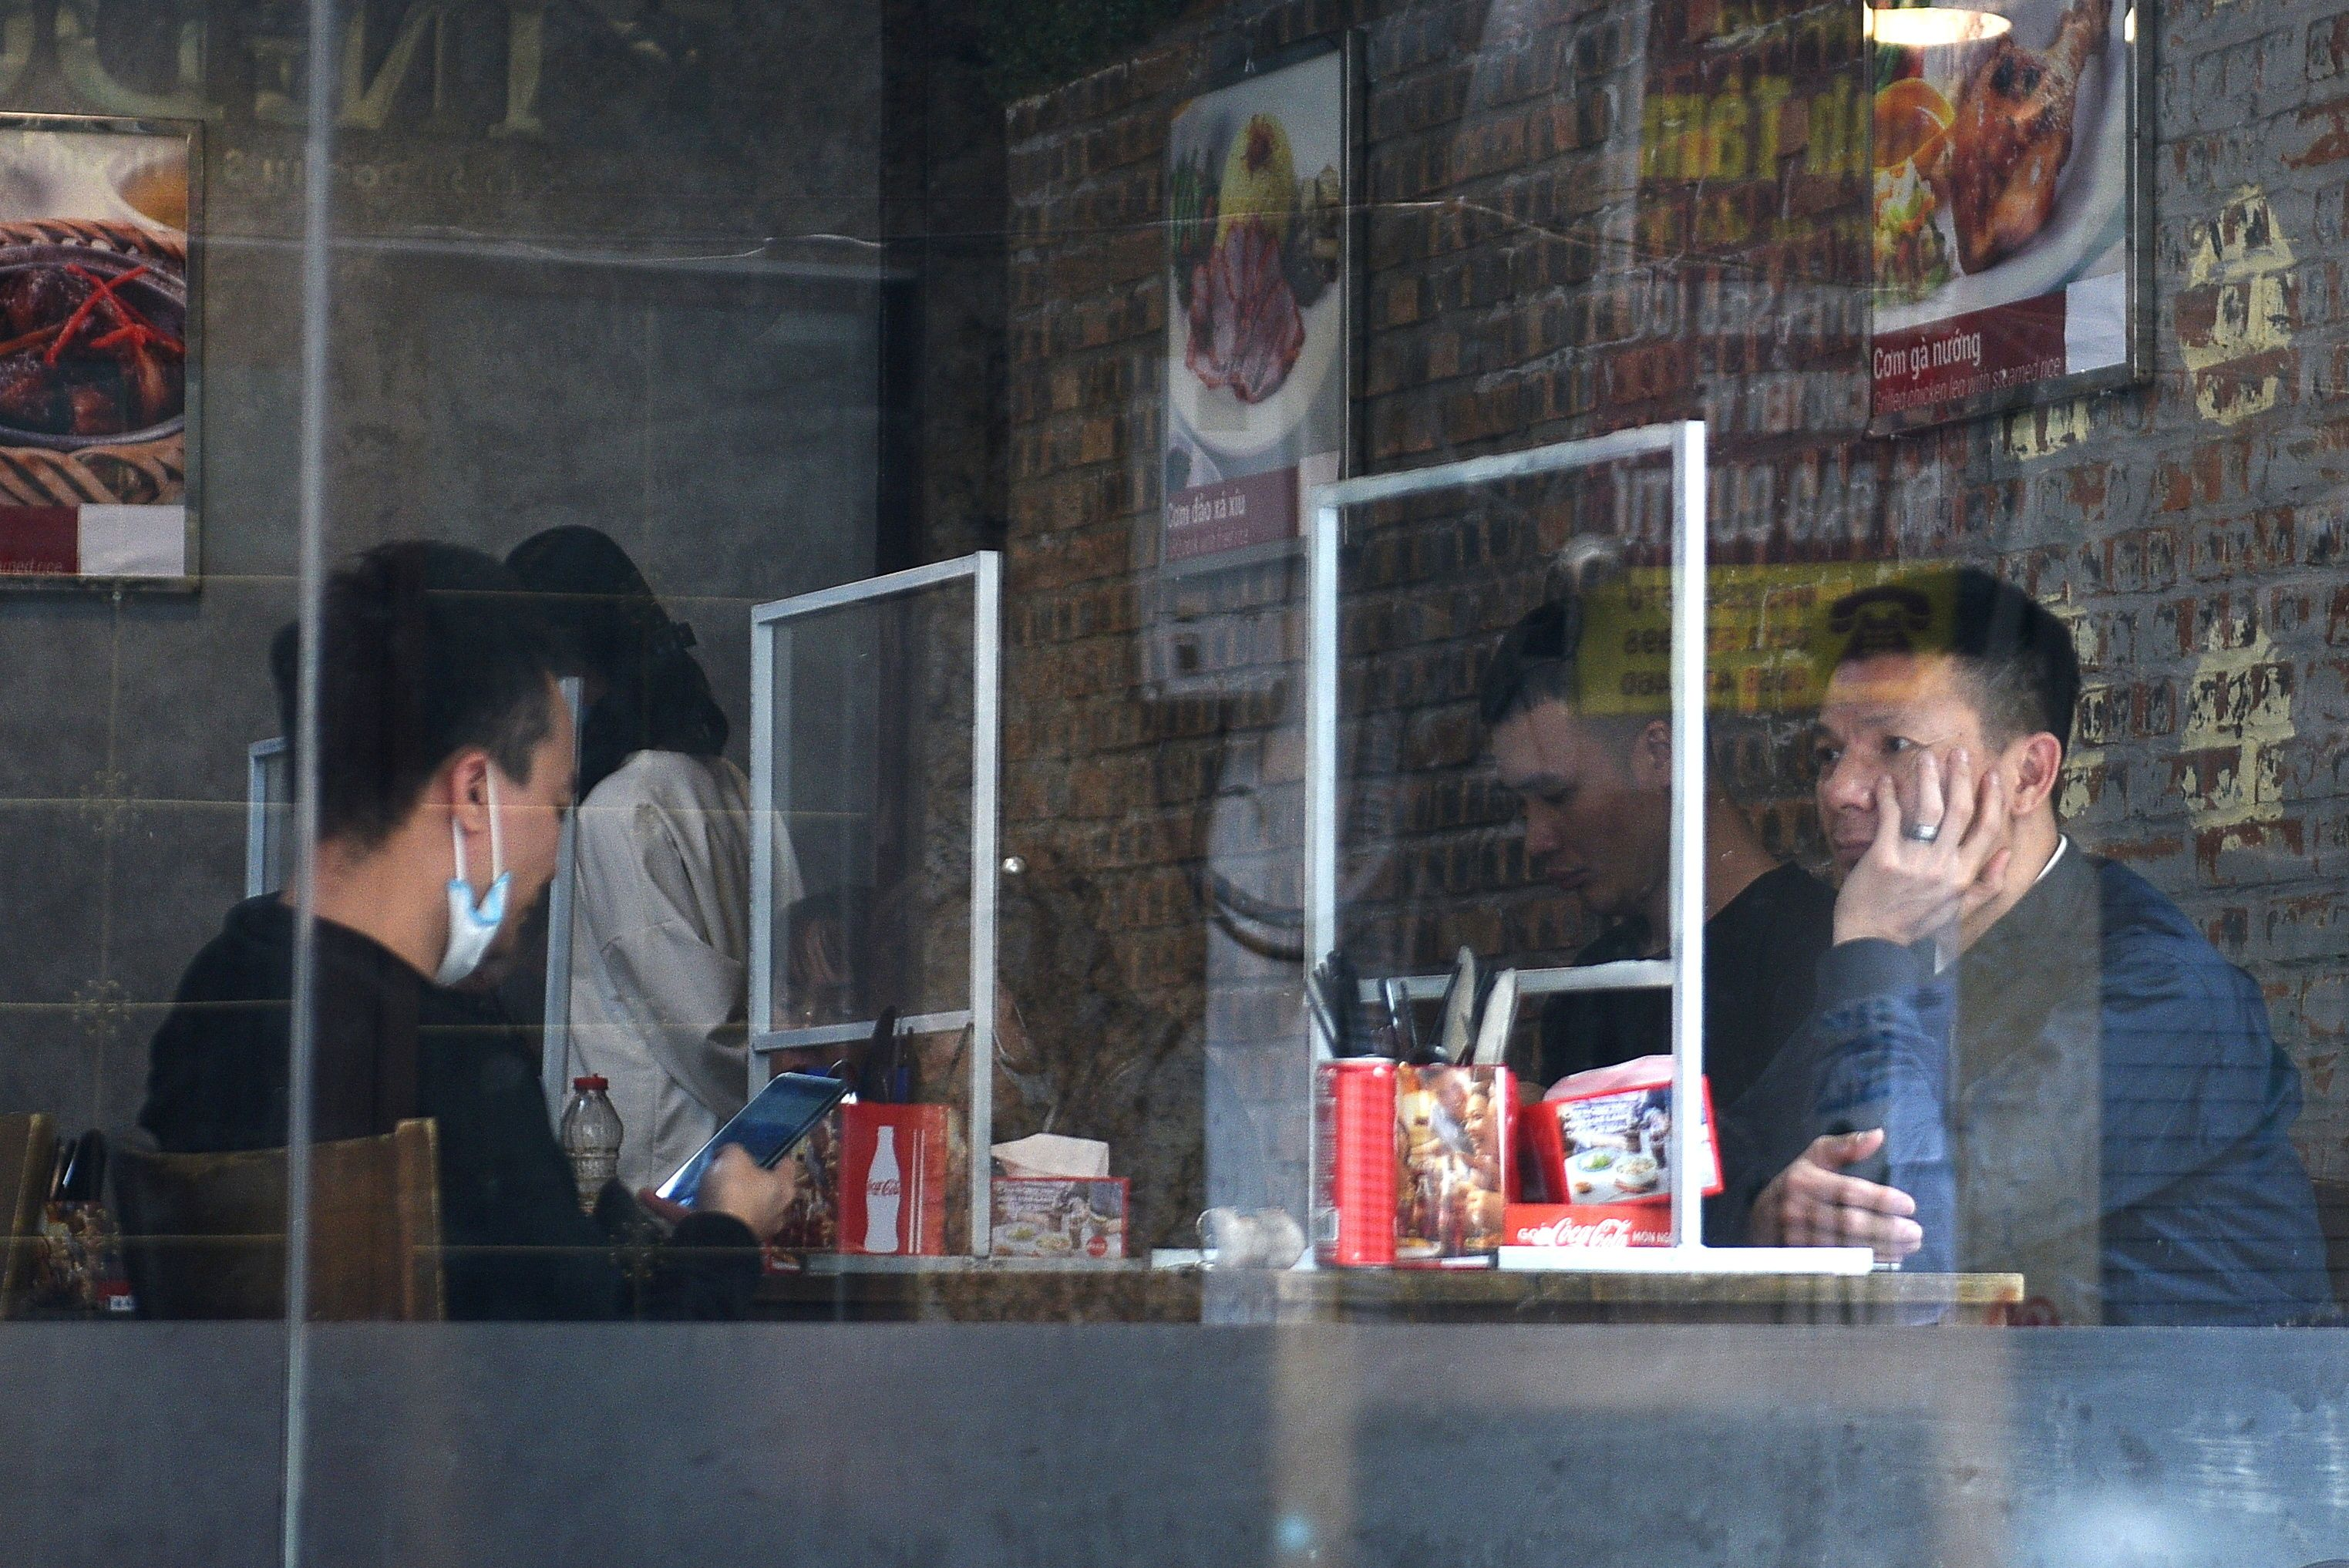 People sit in a restaurant behind plastic dividers as a measure against the sread of the coronavirus disease (COVID-19) in Hanoi, Vietnam, February 18, 2021. REUTERS/Thanh Hue/File Photo